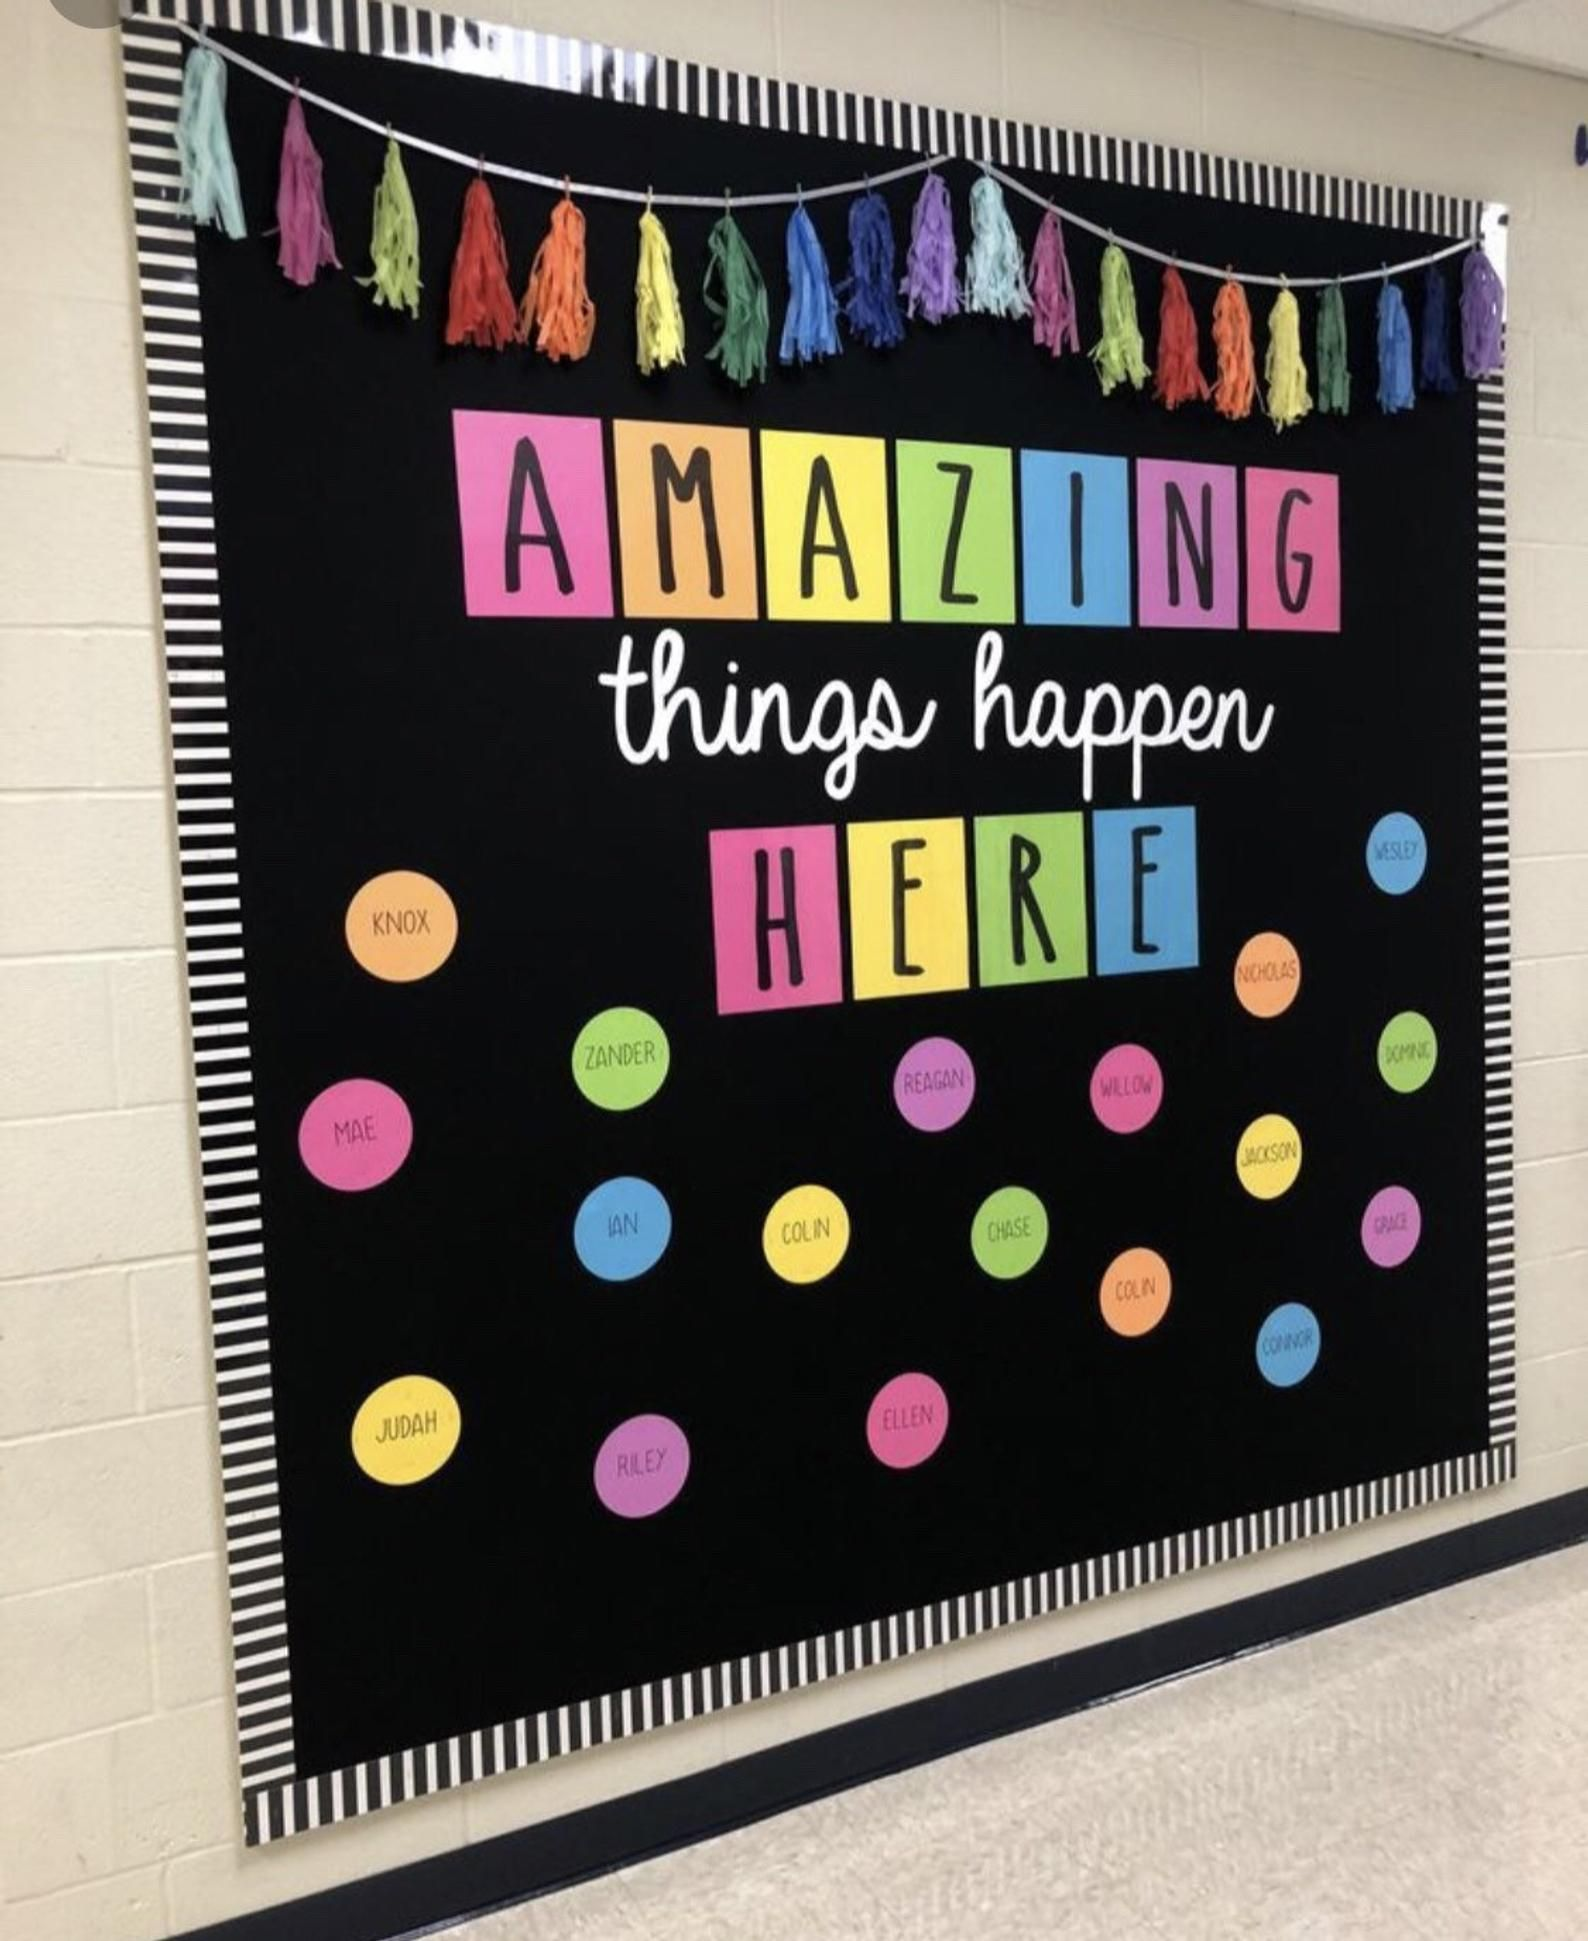 Teachers School Bulletin Board Cutouts DIY Kit Amazing Things Happen Here | Back to School Decoration | Bulletin Board Cutouts Decor